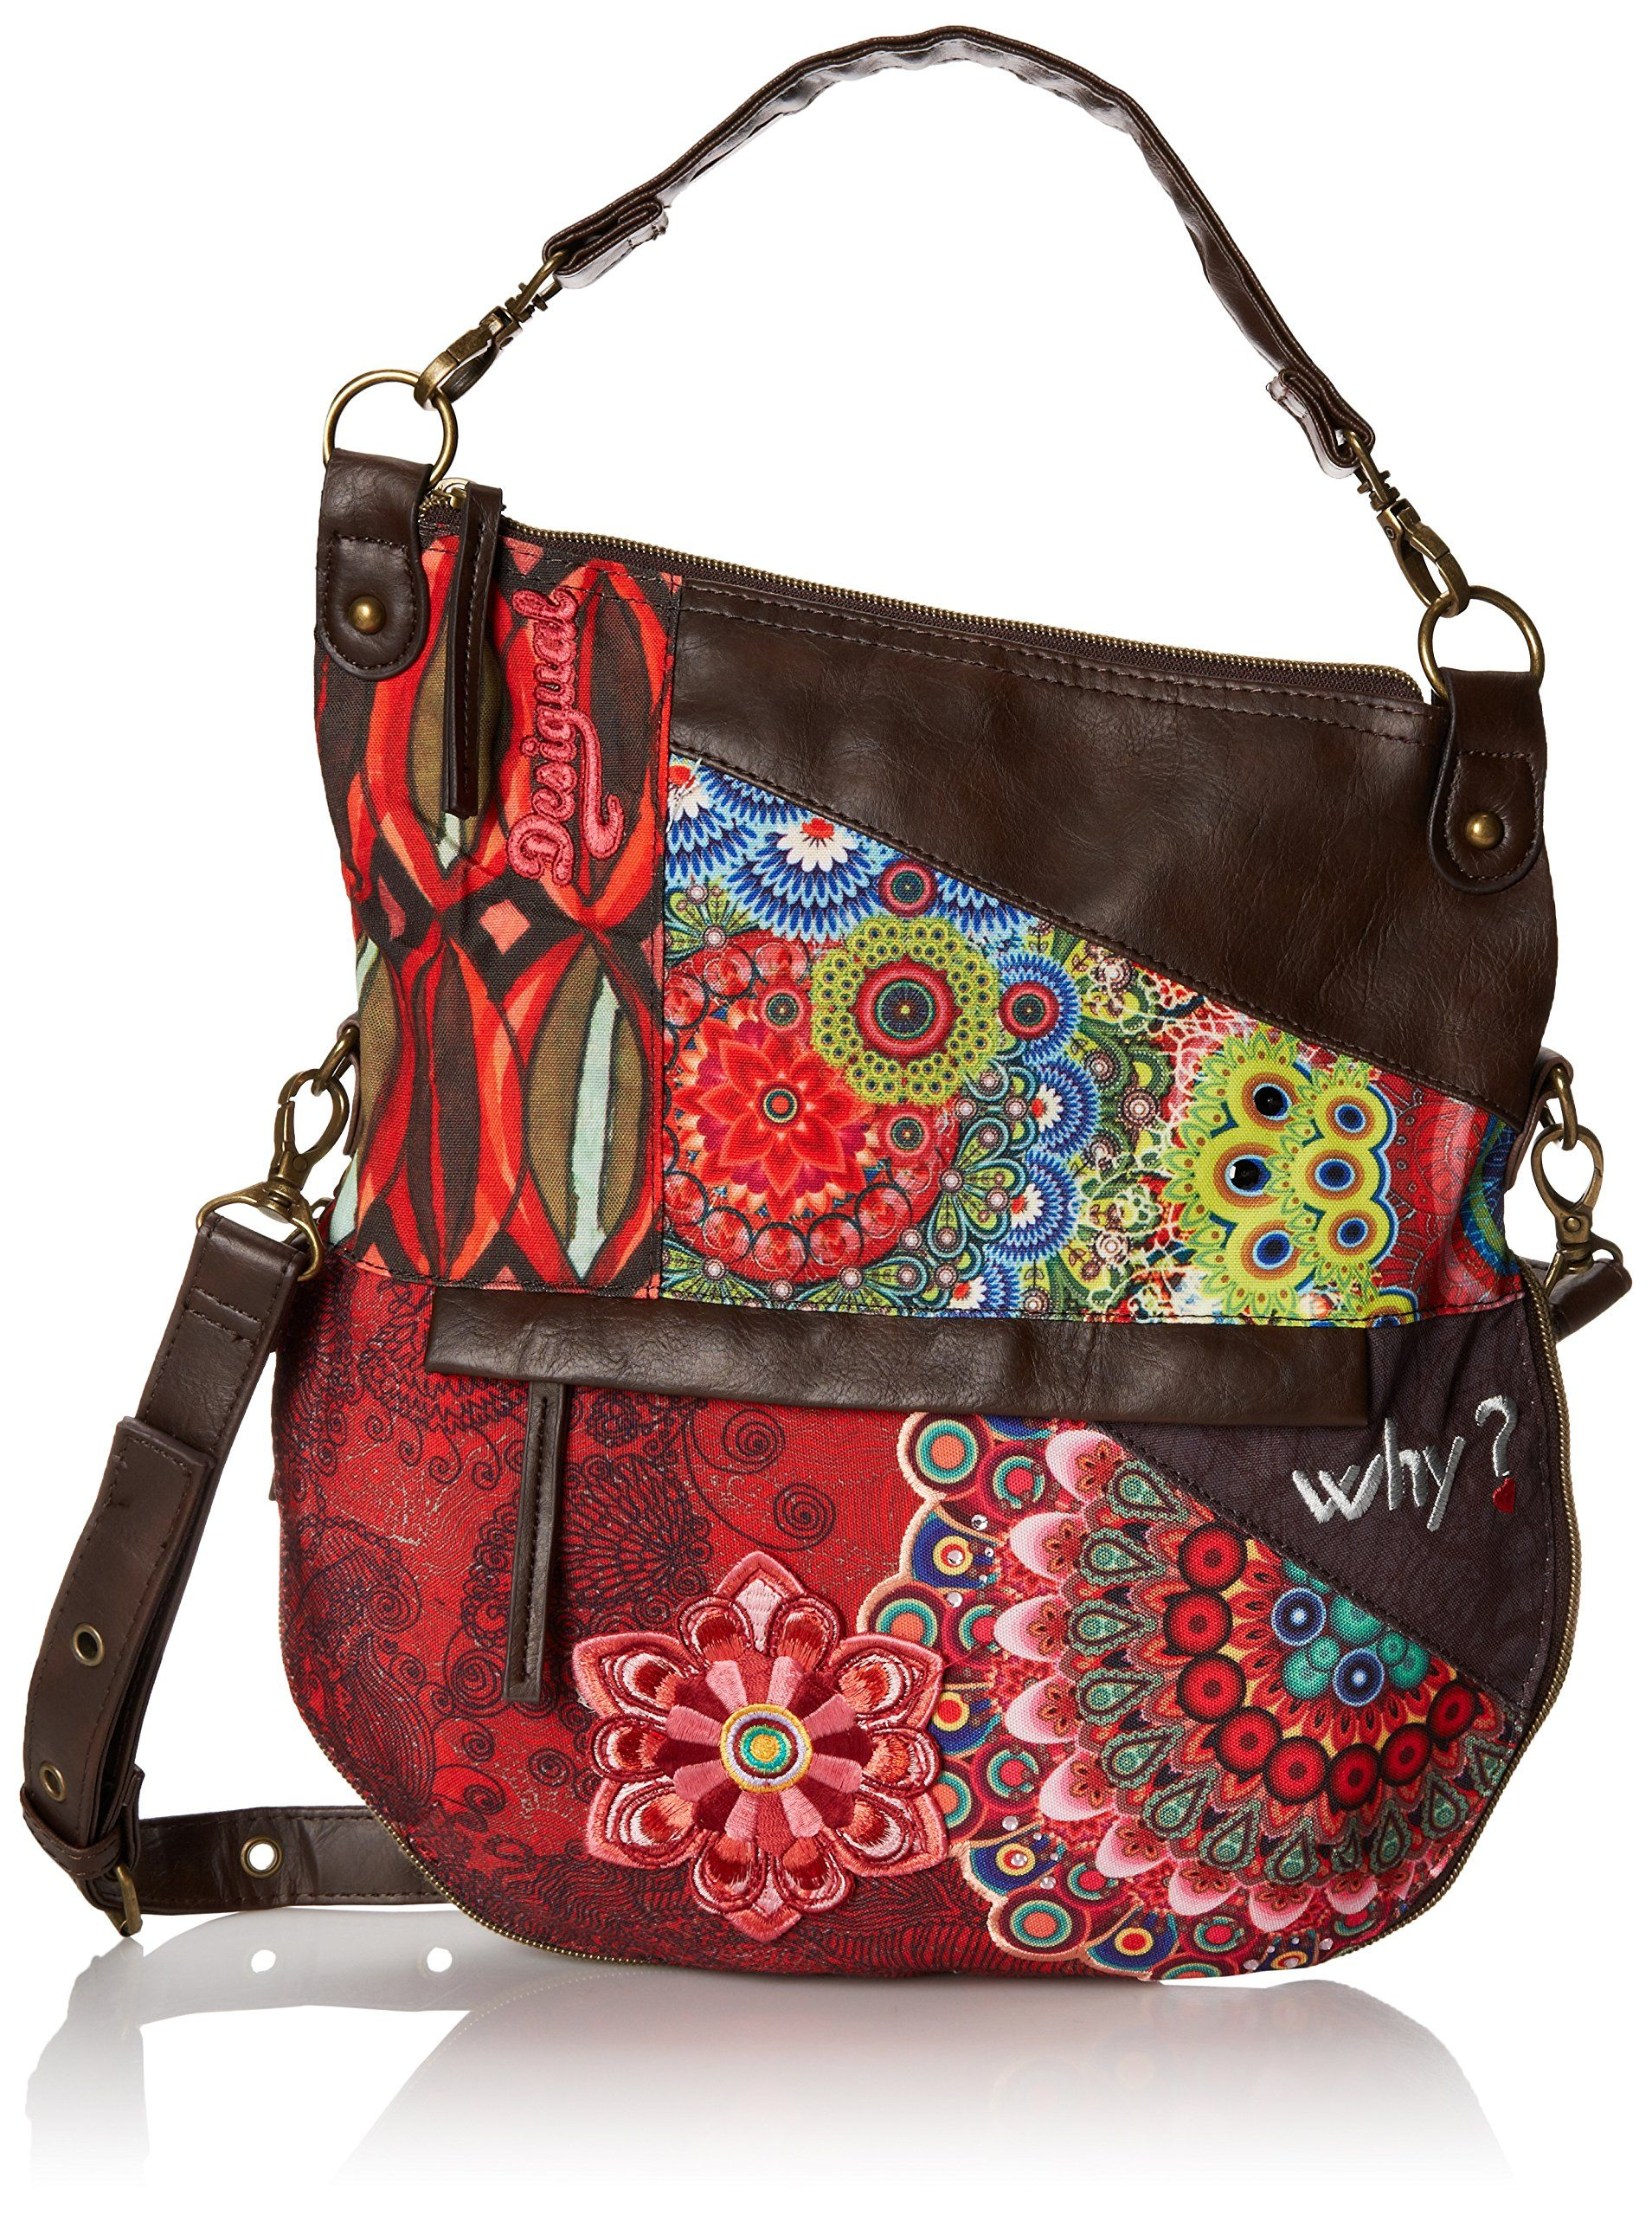 Desigual Women's Plastificado Everyday Handbag | Bolsos